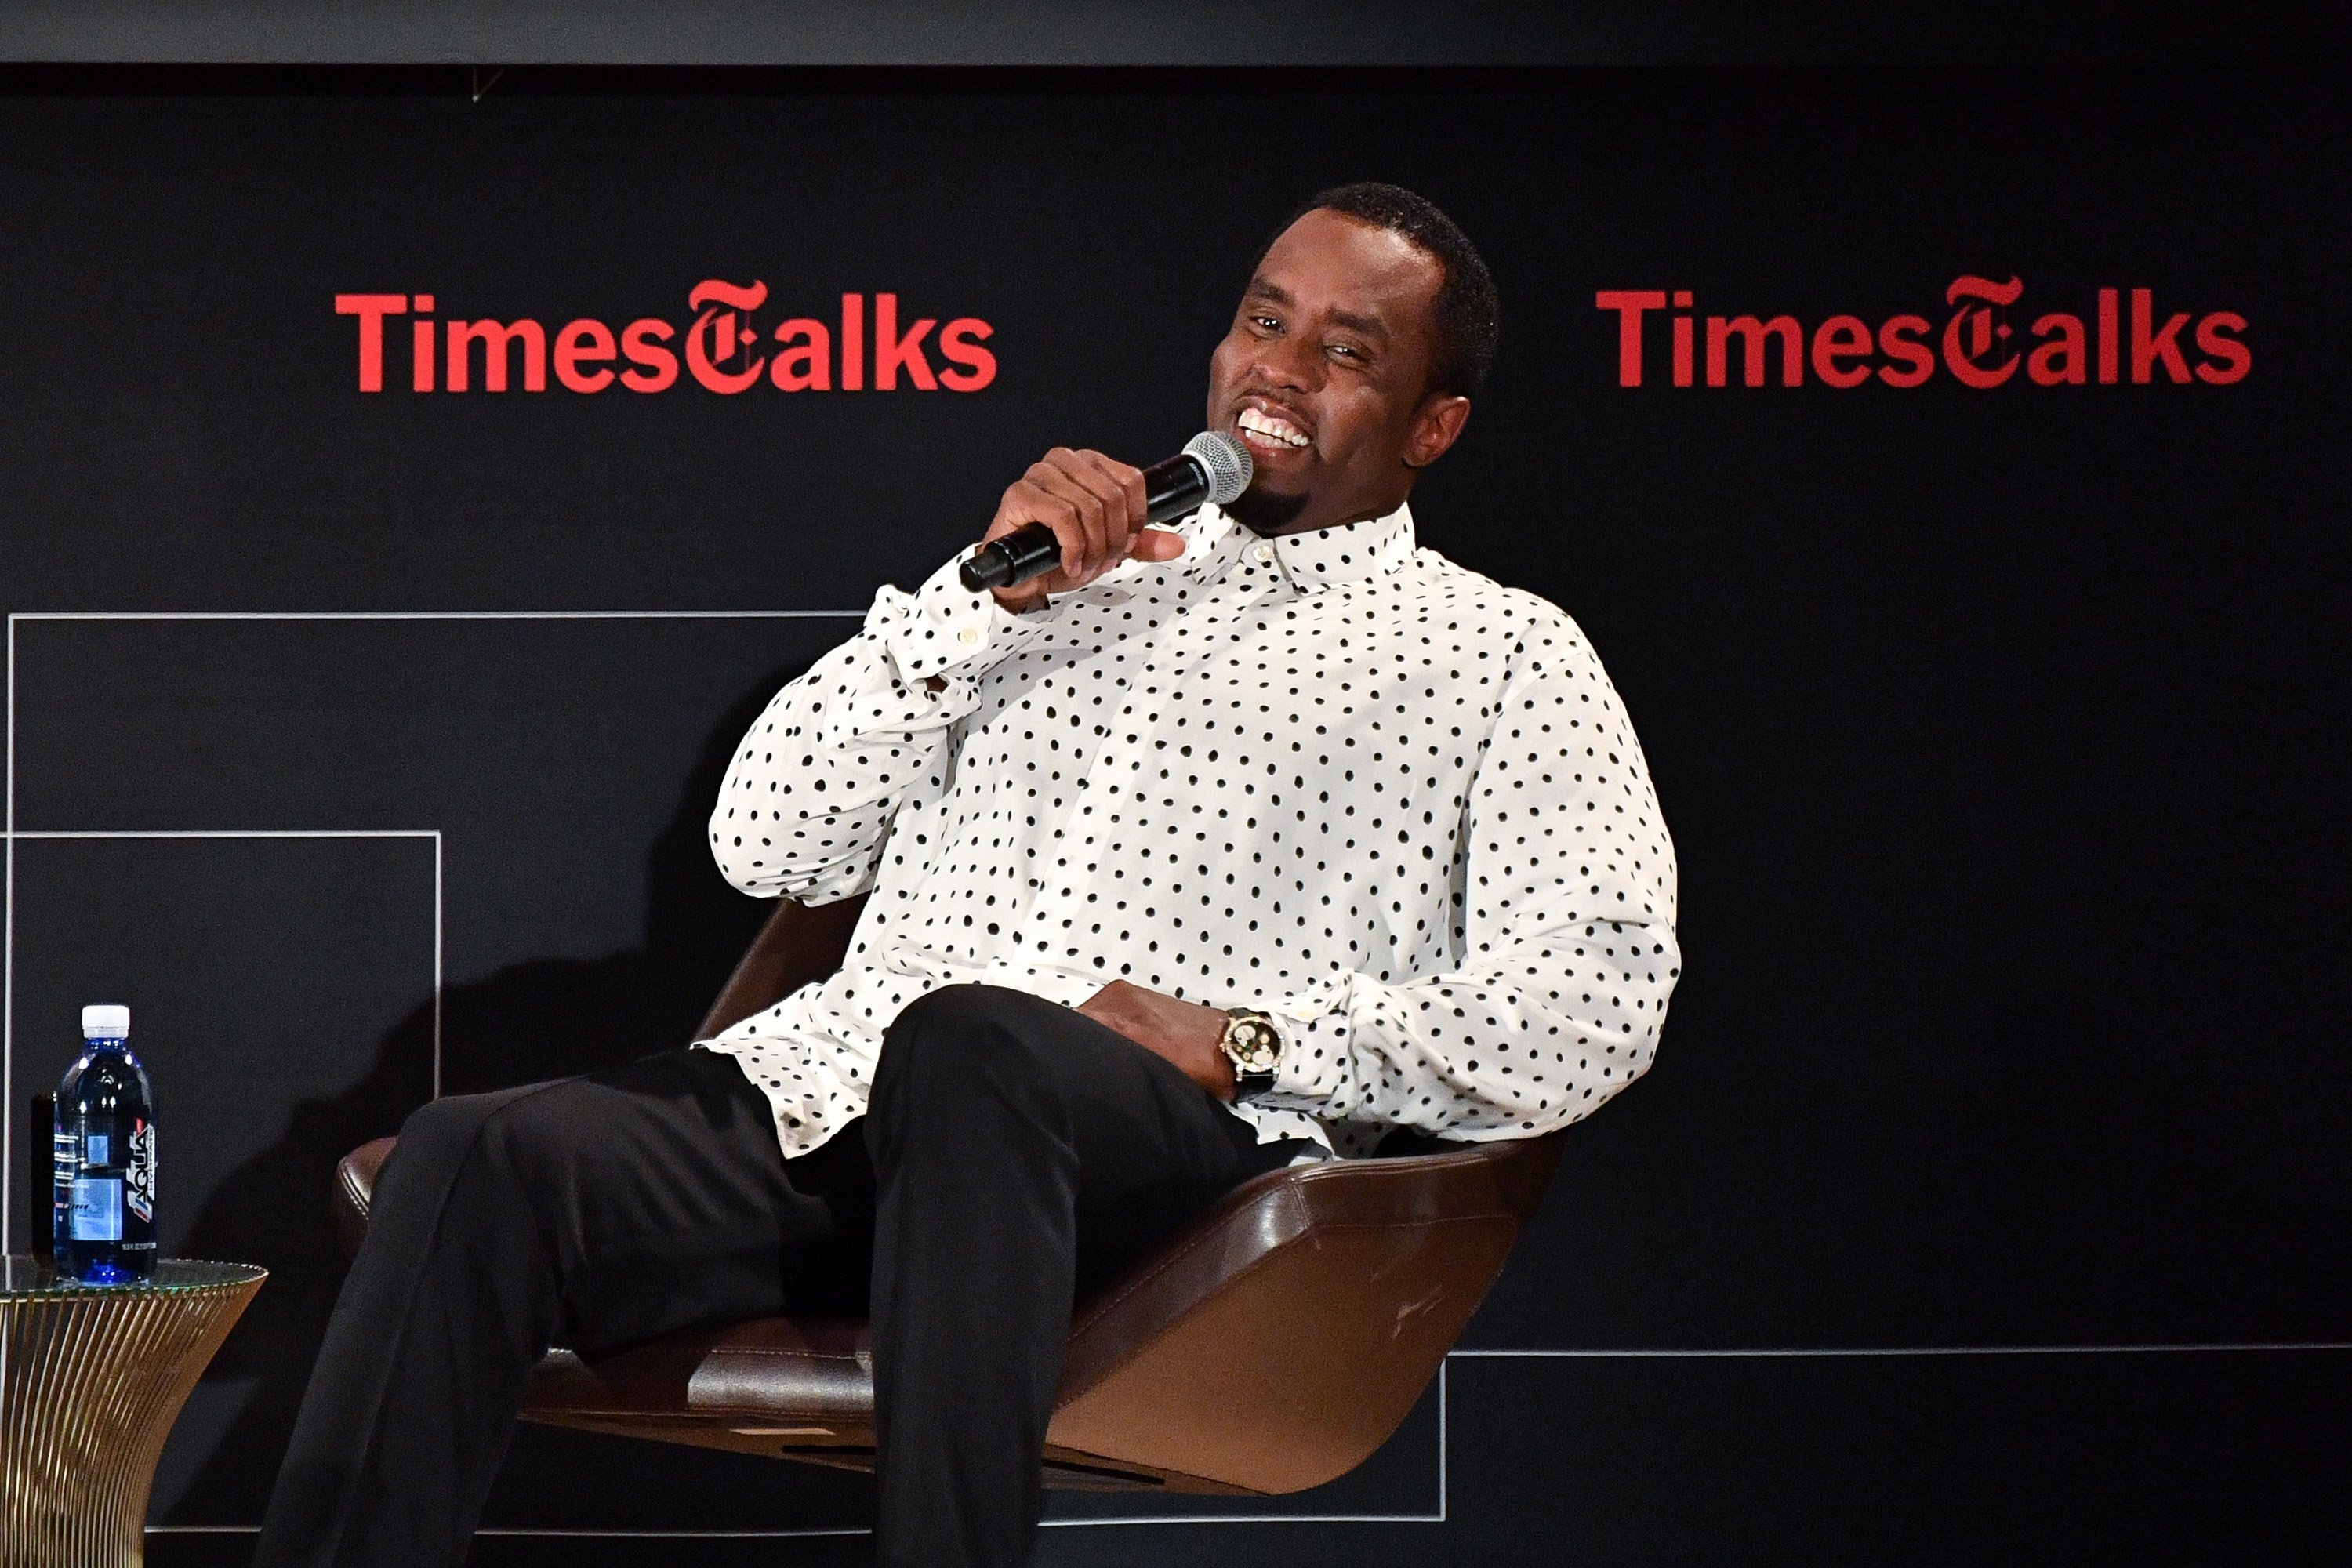 """Sean """"Diddy"""" Combs at TimesTalks Presents: An Evening with Sean """"Diddy"""" Combs on September 20, 2017. 